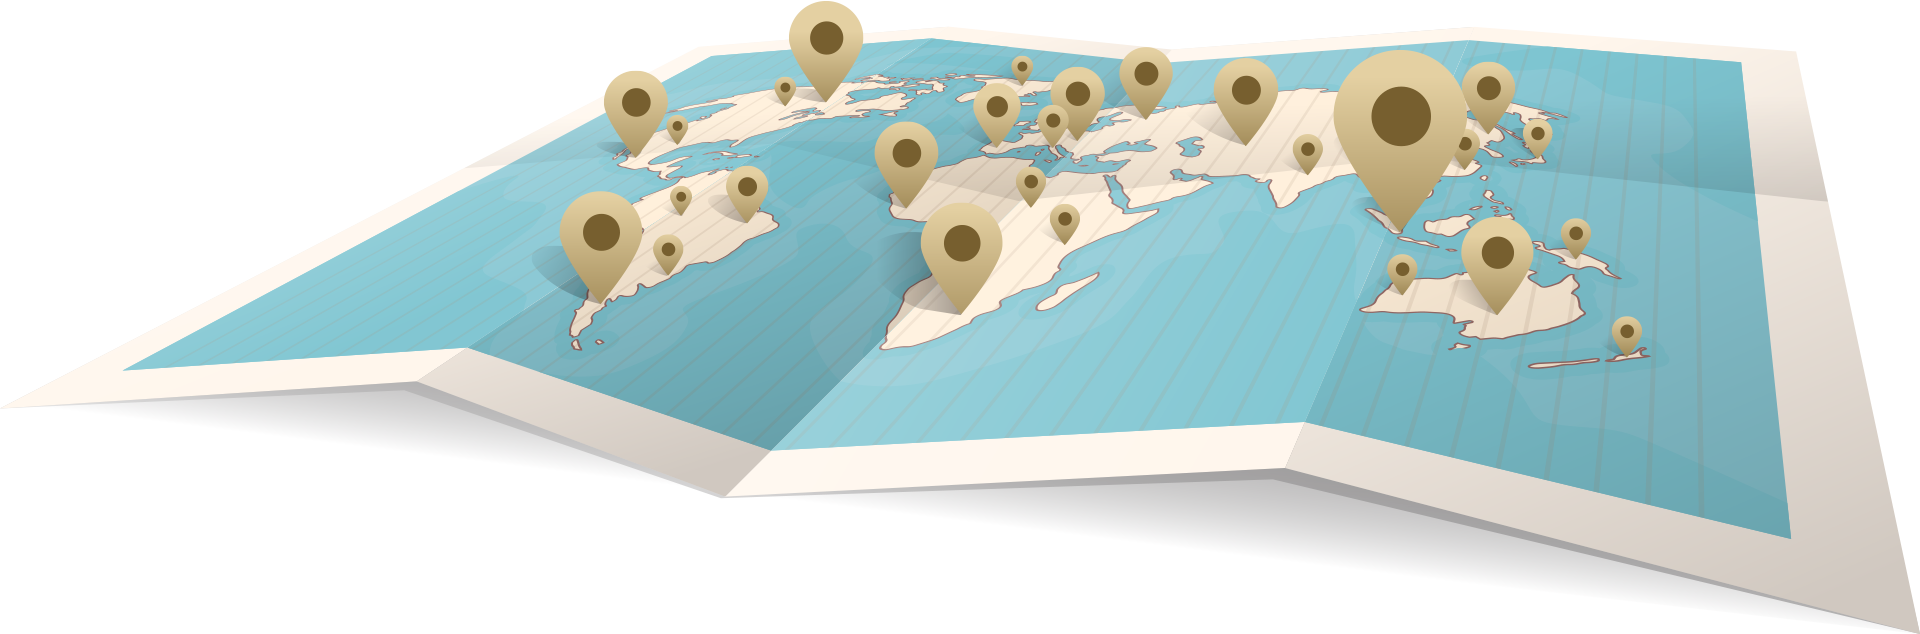 World map with multiple location pins